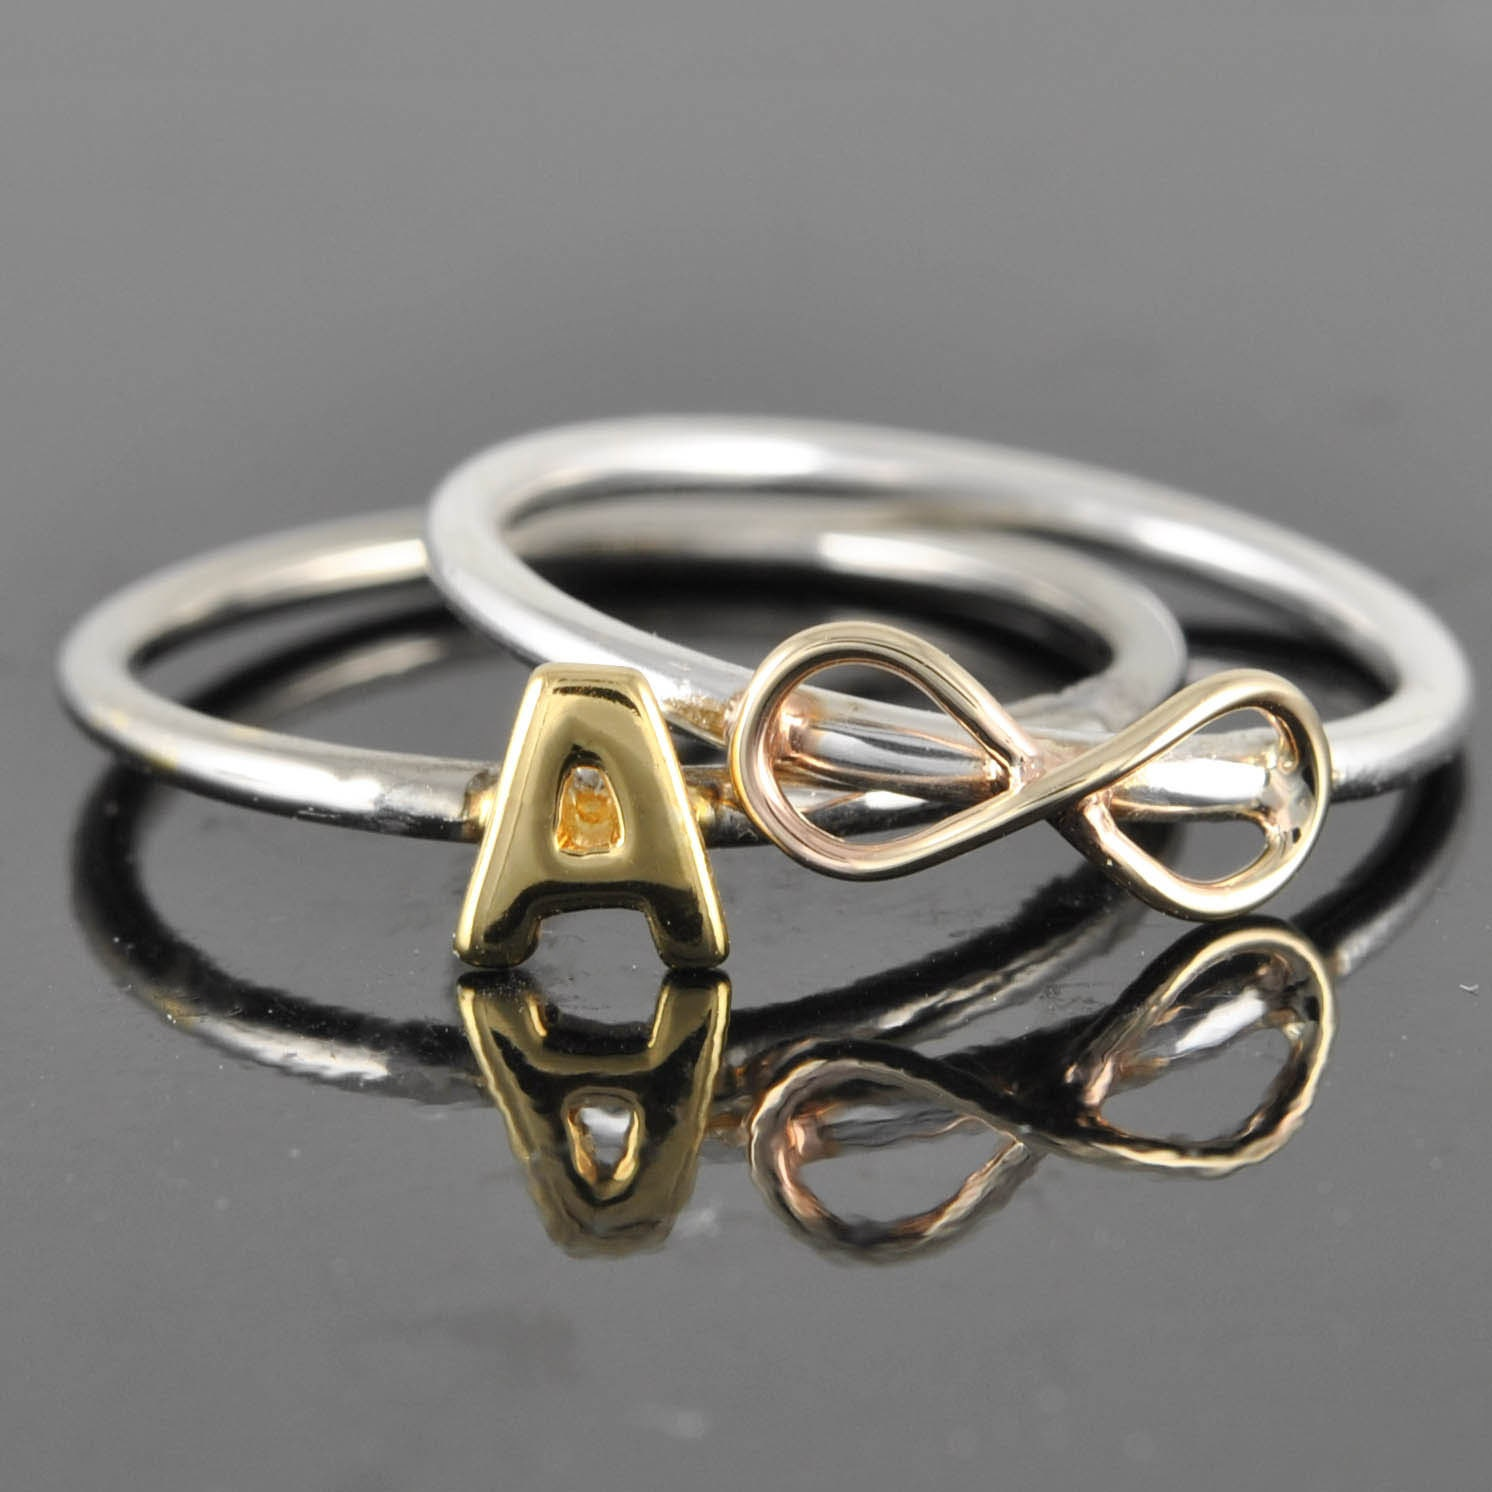 engagement rings qbotmsp wedding white in mother cute special diamond infinity with fancy tw promise jhdmwig mothers stone cool ring gold diamonds